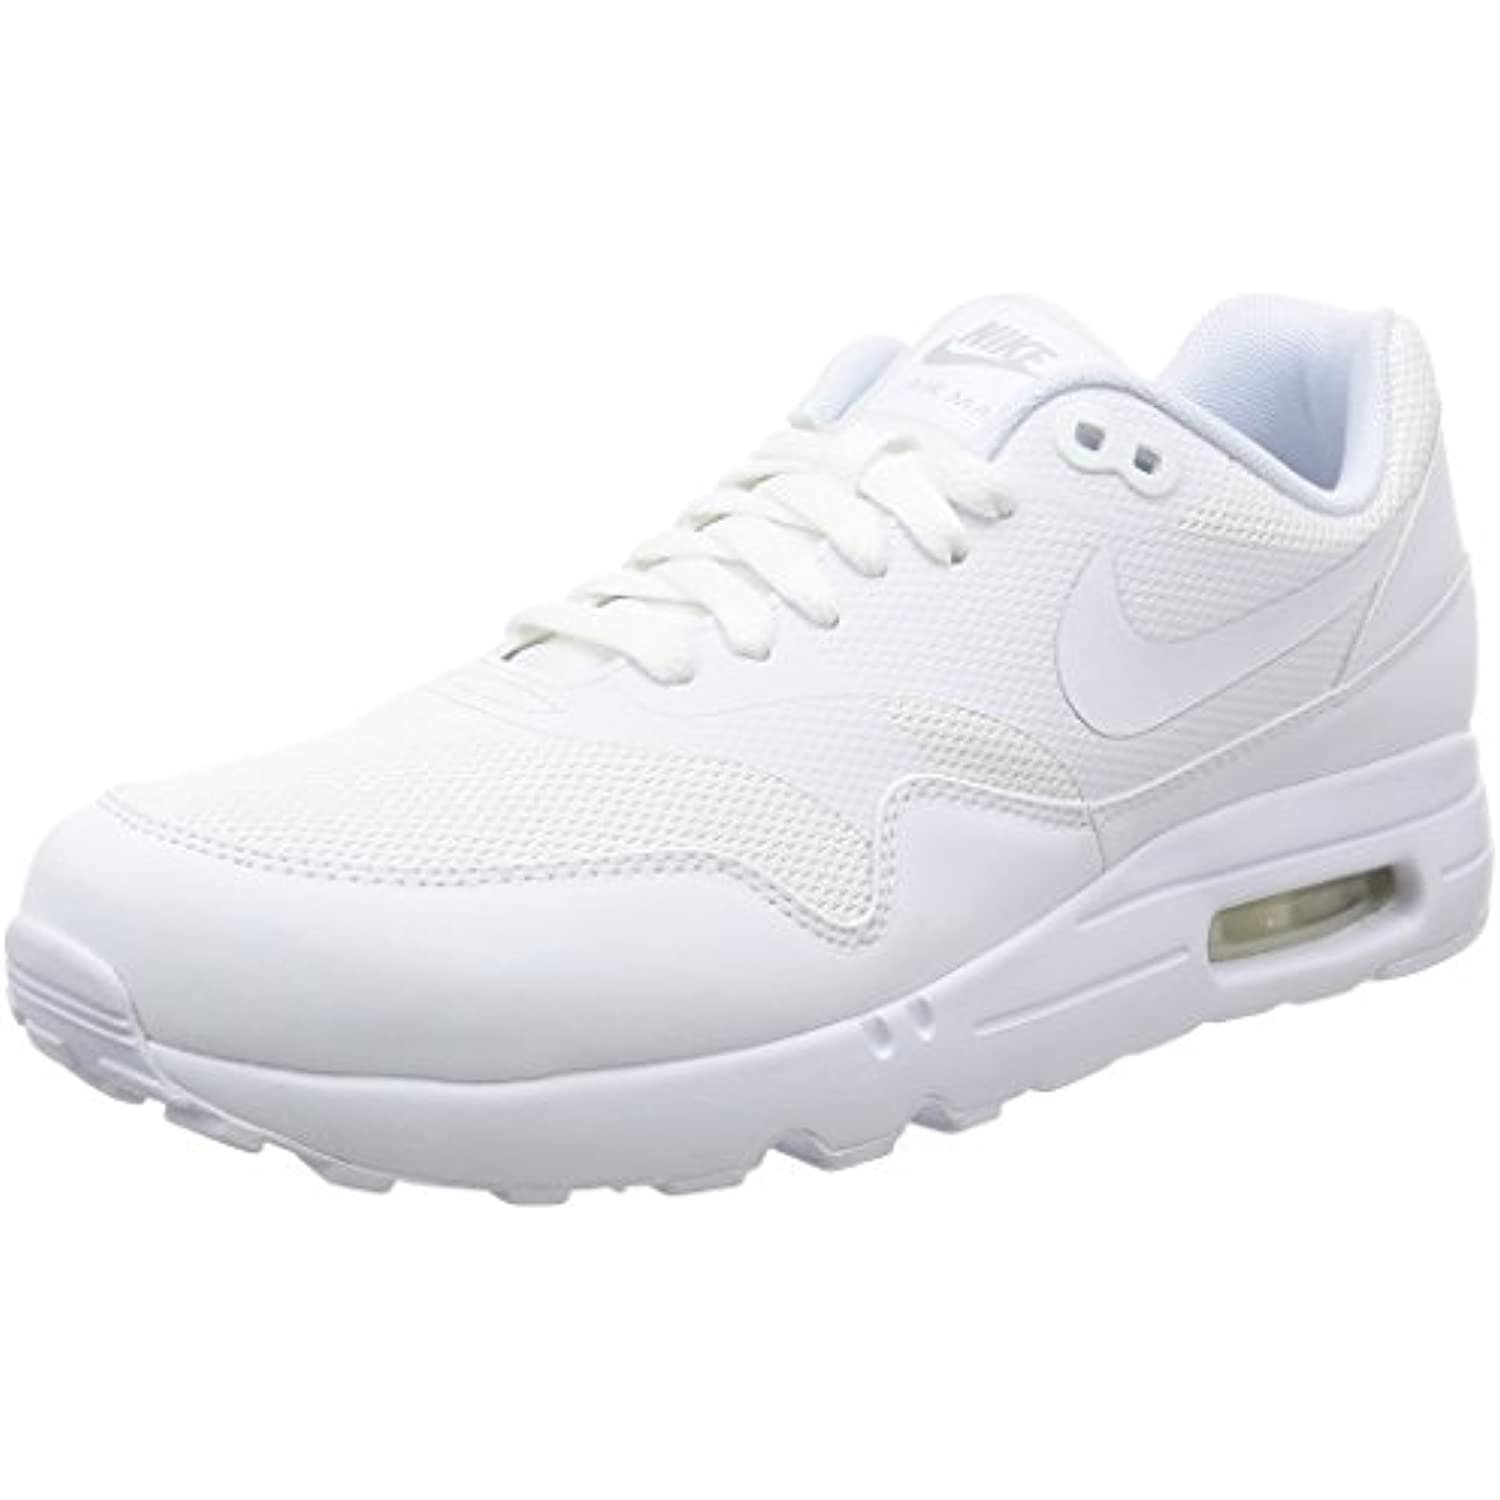 brand new 54b63 8bde8 NIKE NIKE NIKE Air Max 1 Ultra Essential, Les Formateurs Homme B01NBHMXD2 -  18418a